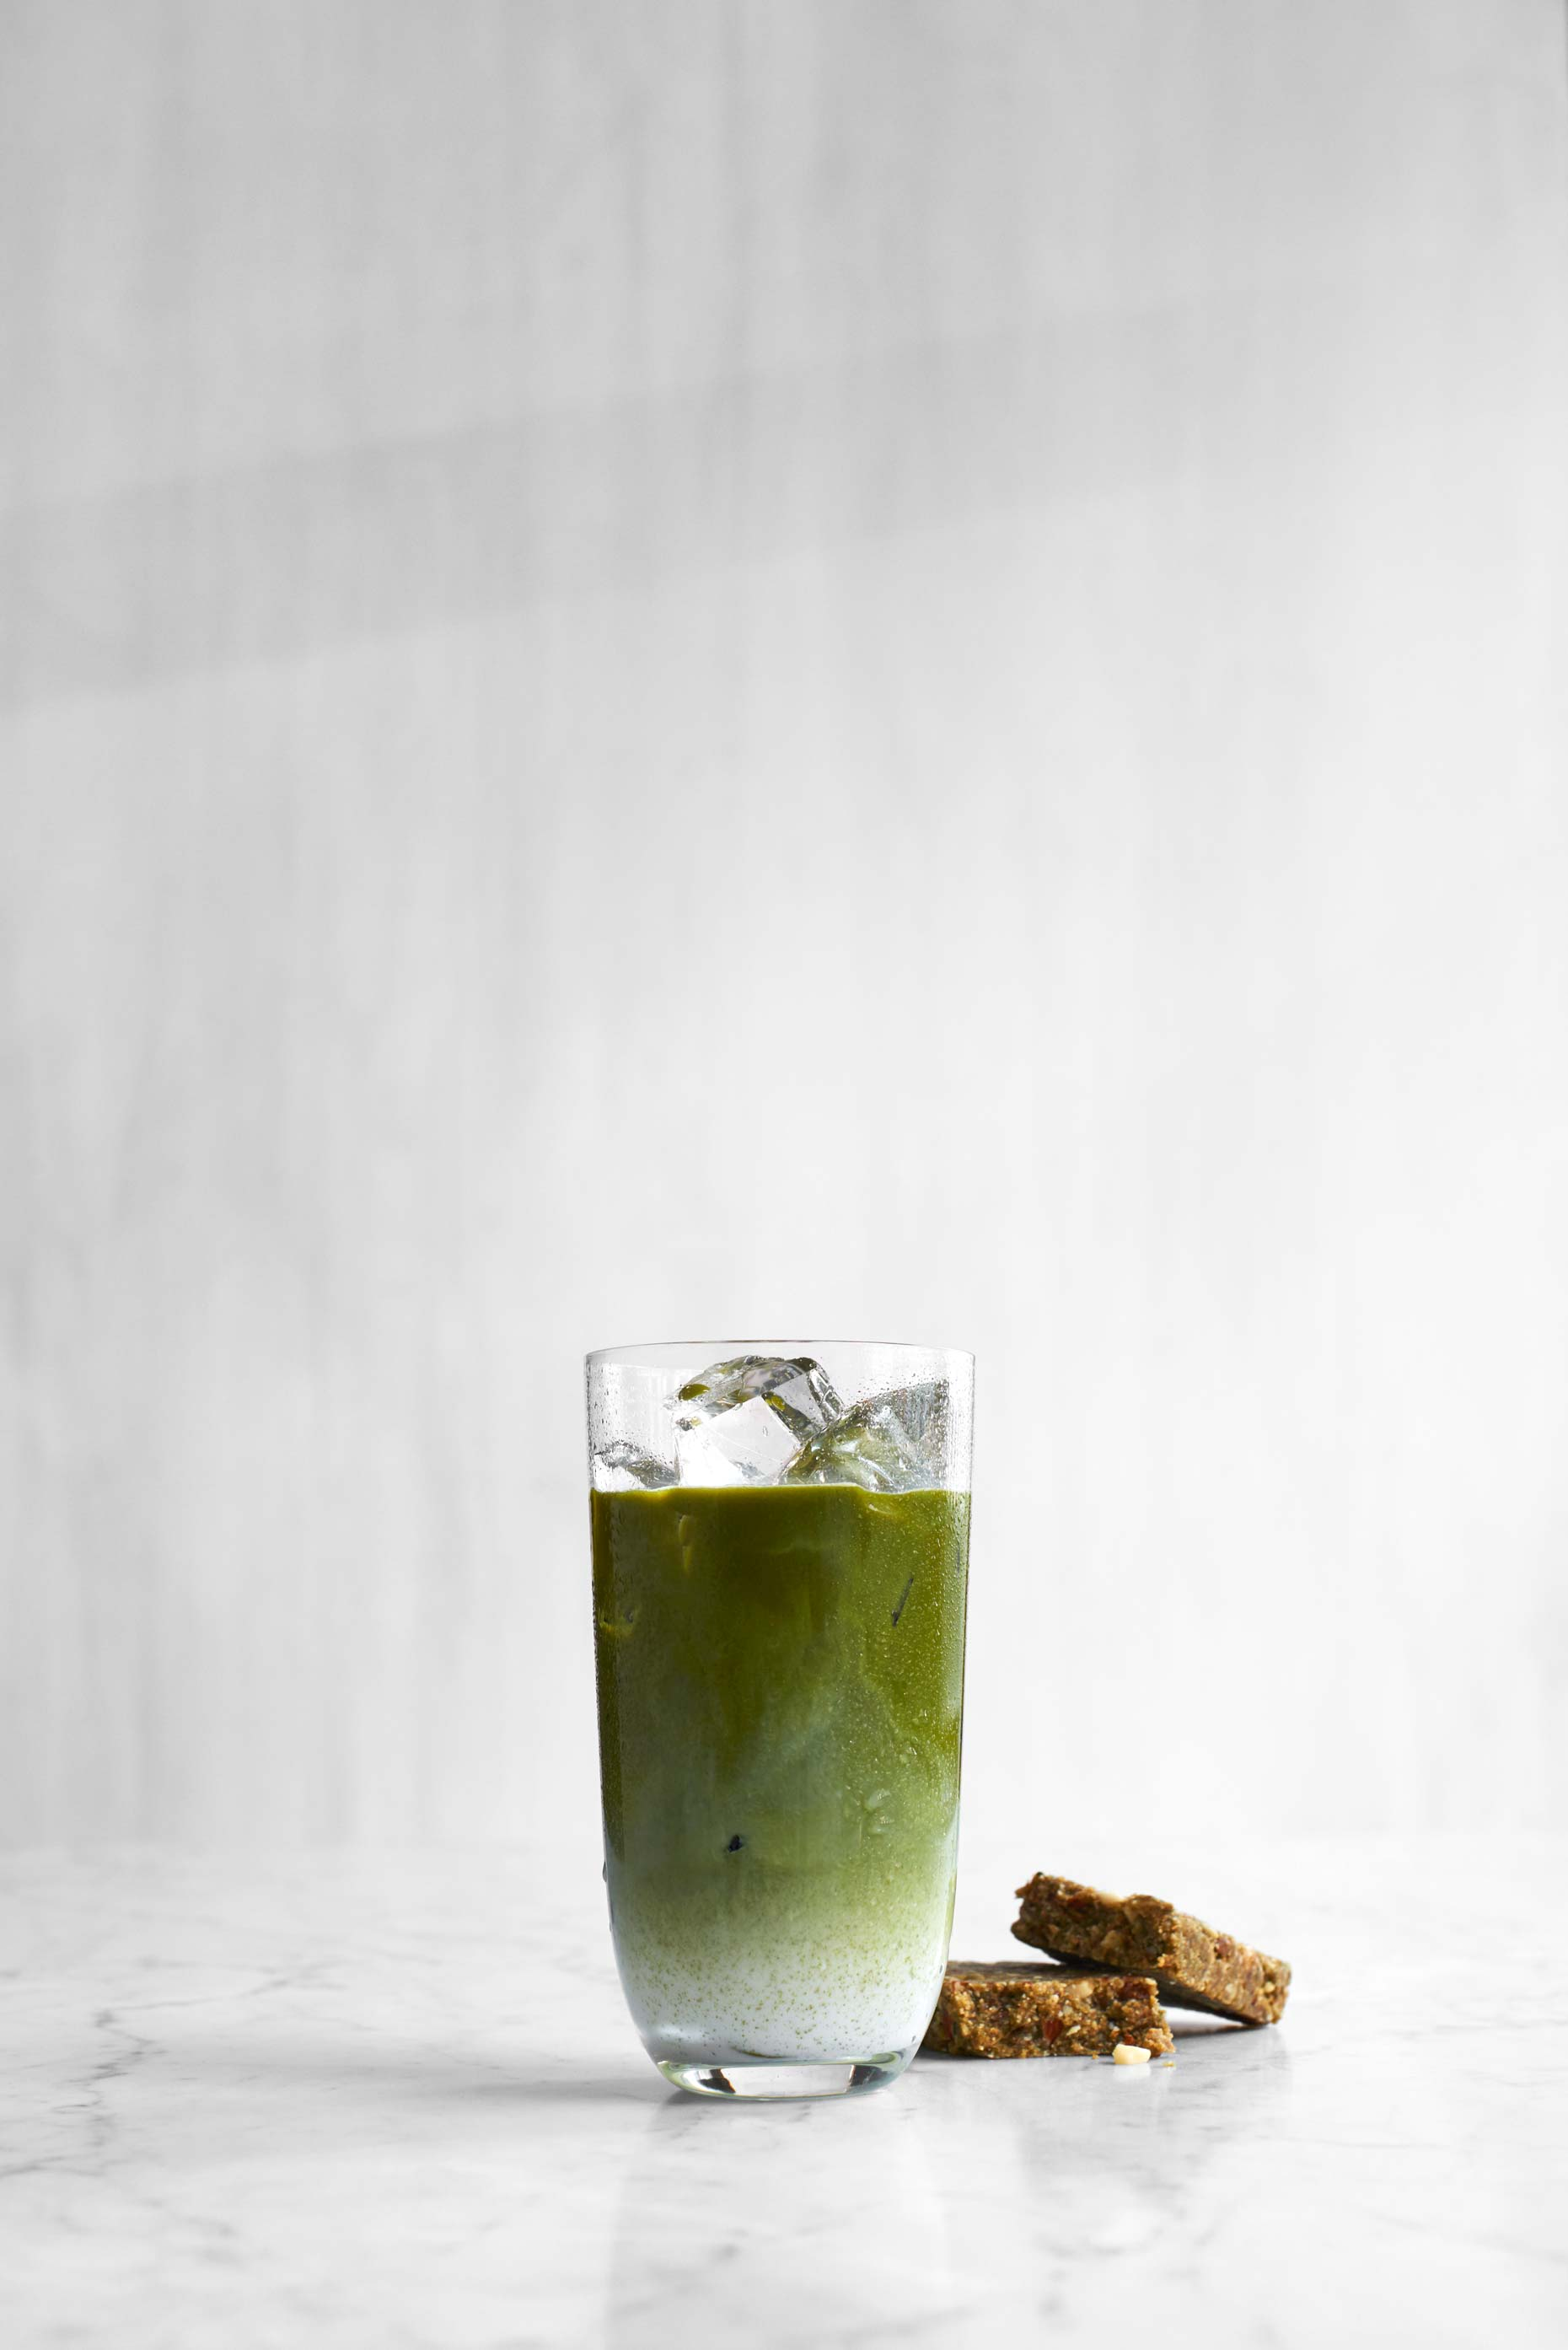 Green pear and kiwi smoothie photographed by Food Photographer Adrian Mueller New York